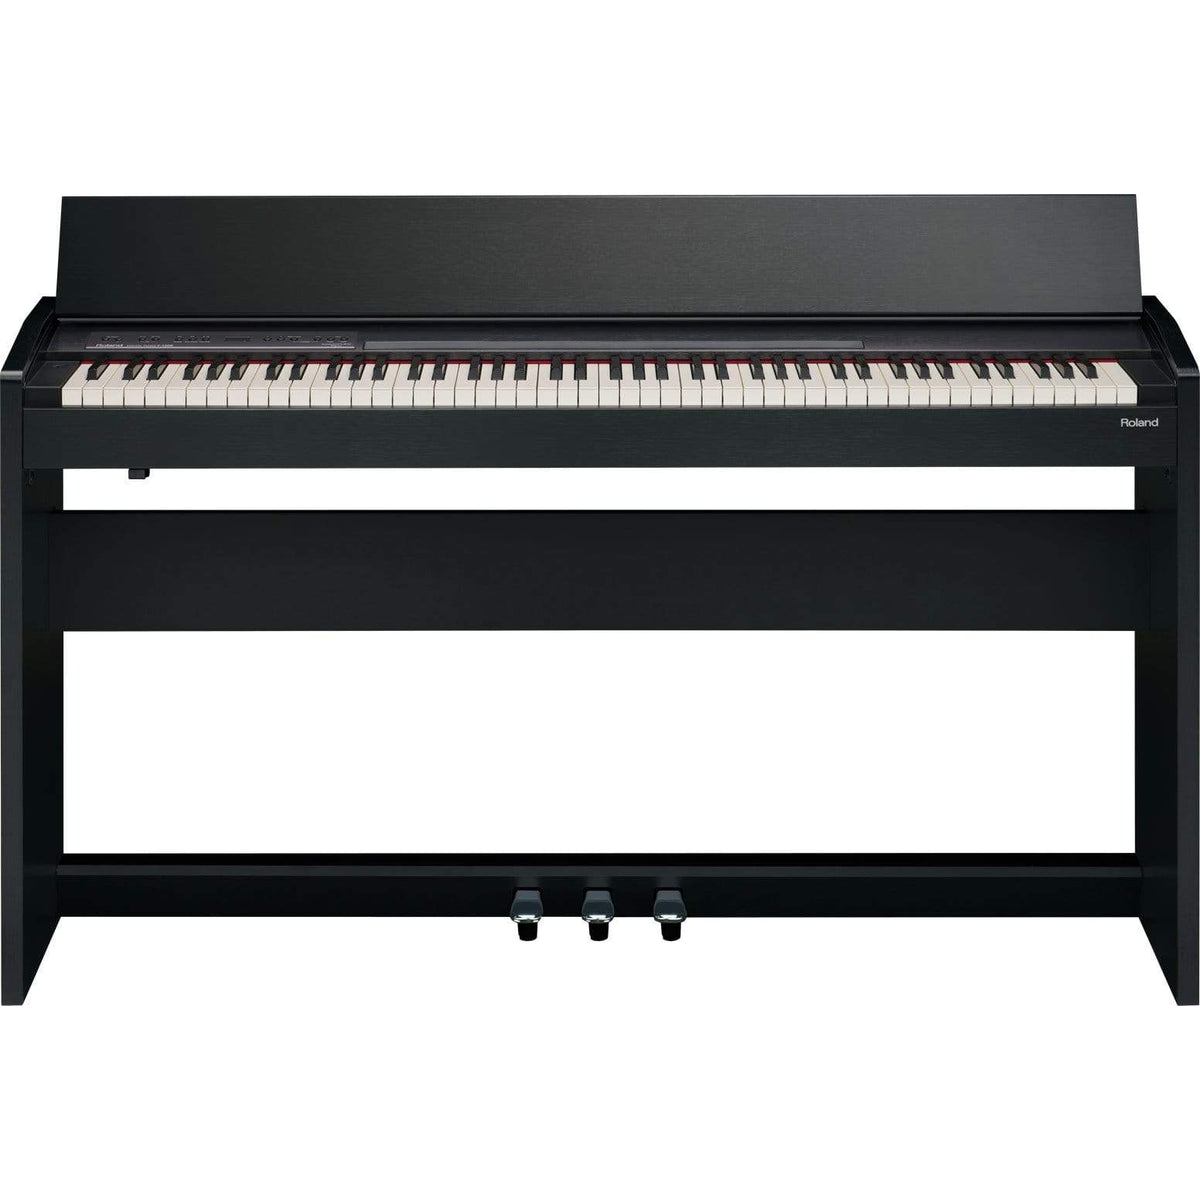 Roland F-130R Digital Piano - Contemporary Black